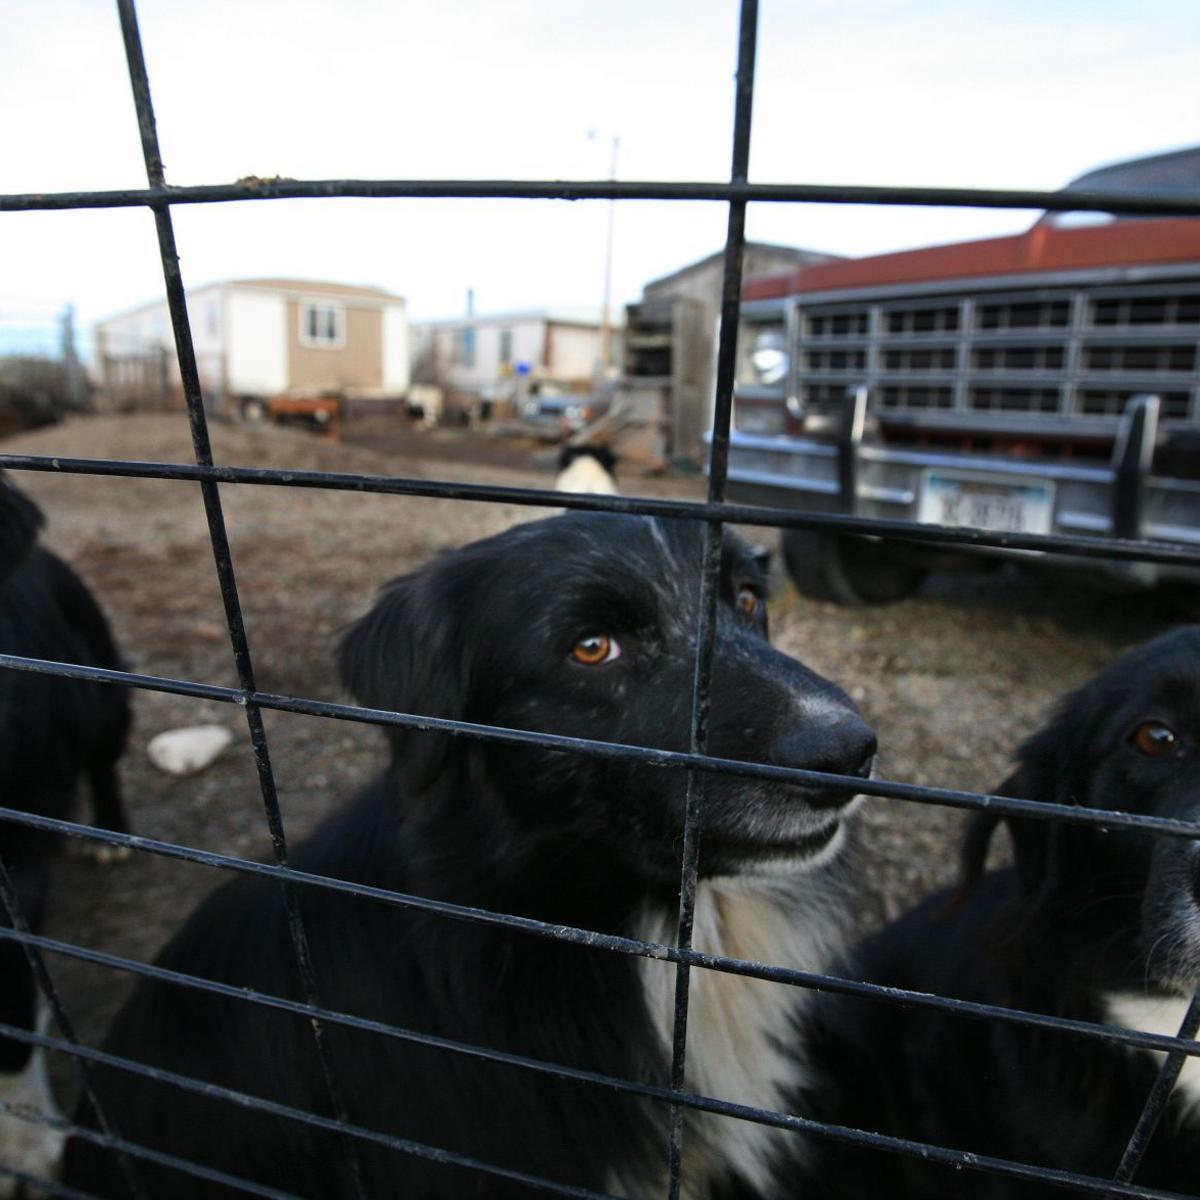 Gazette opinion: Puppy mill misery in Montana | Editorial